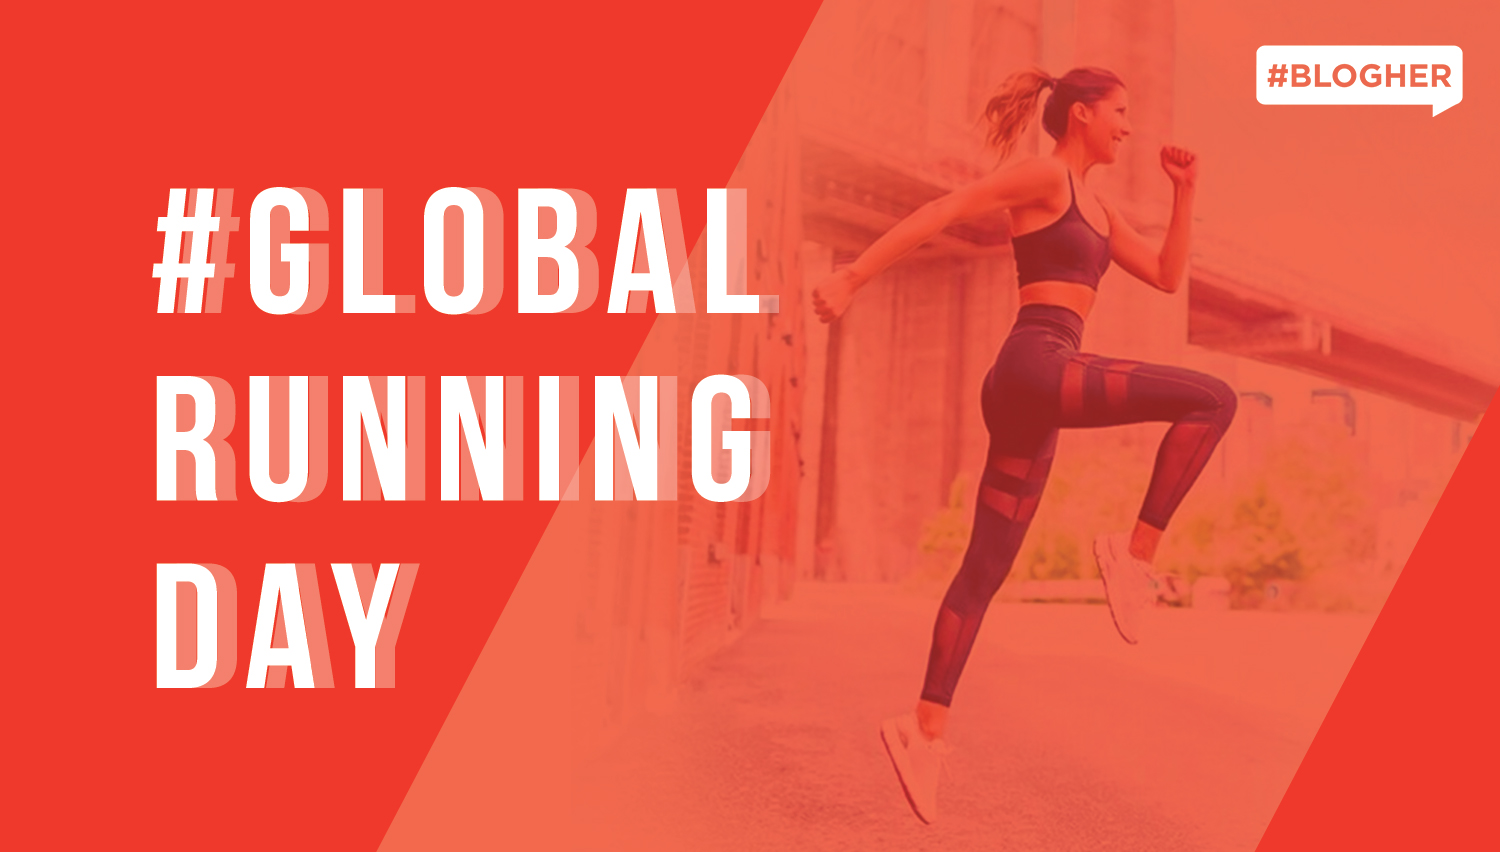 Lace it up and stretch it out for #GlobalRunningDay! - We're taking a look at some phenomenal fit women and their winning wellness content.